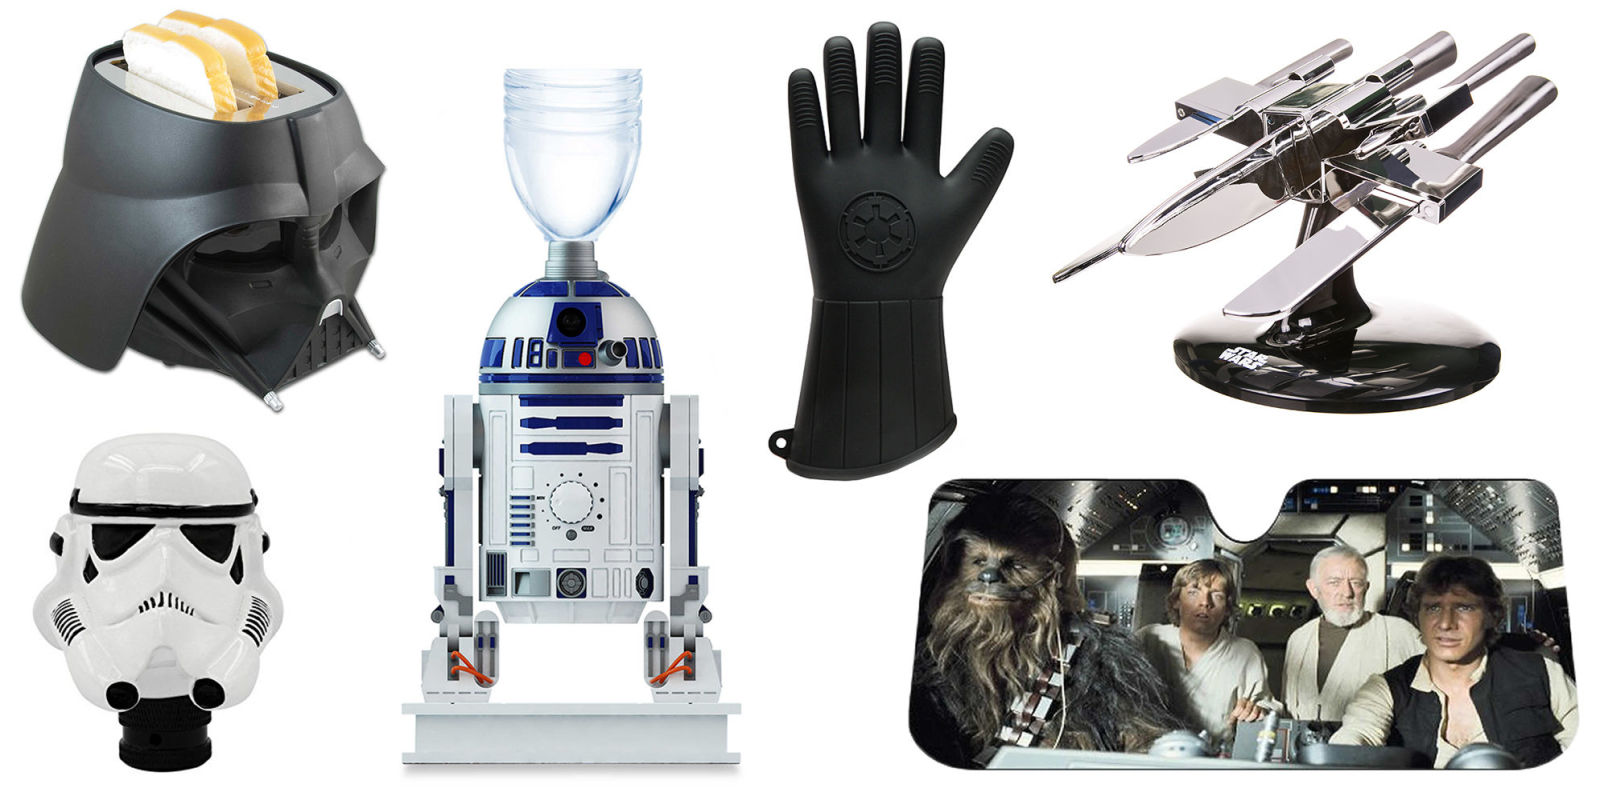 Best star wars stuff 11 cool star wars items and decor for Star home designs products